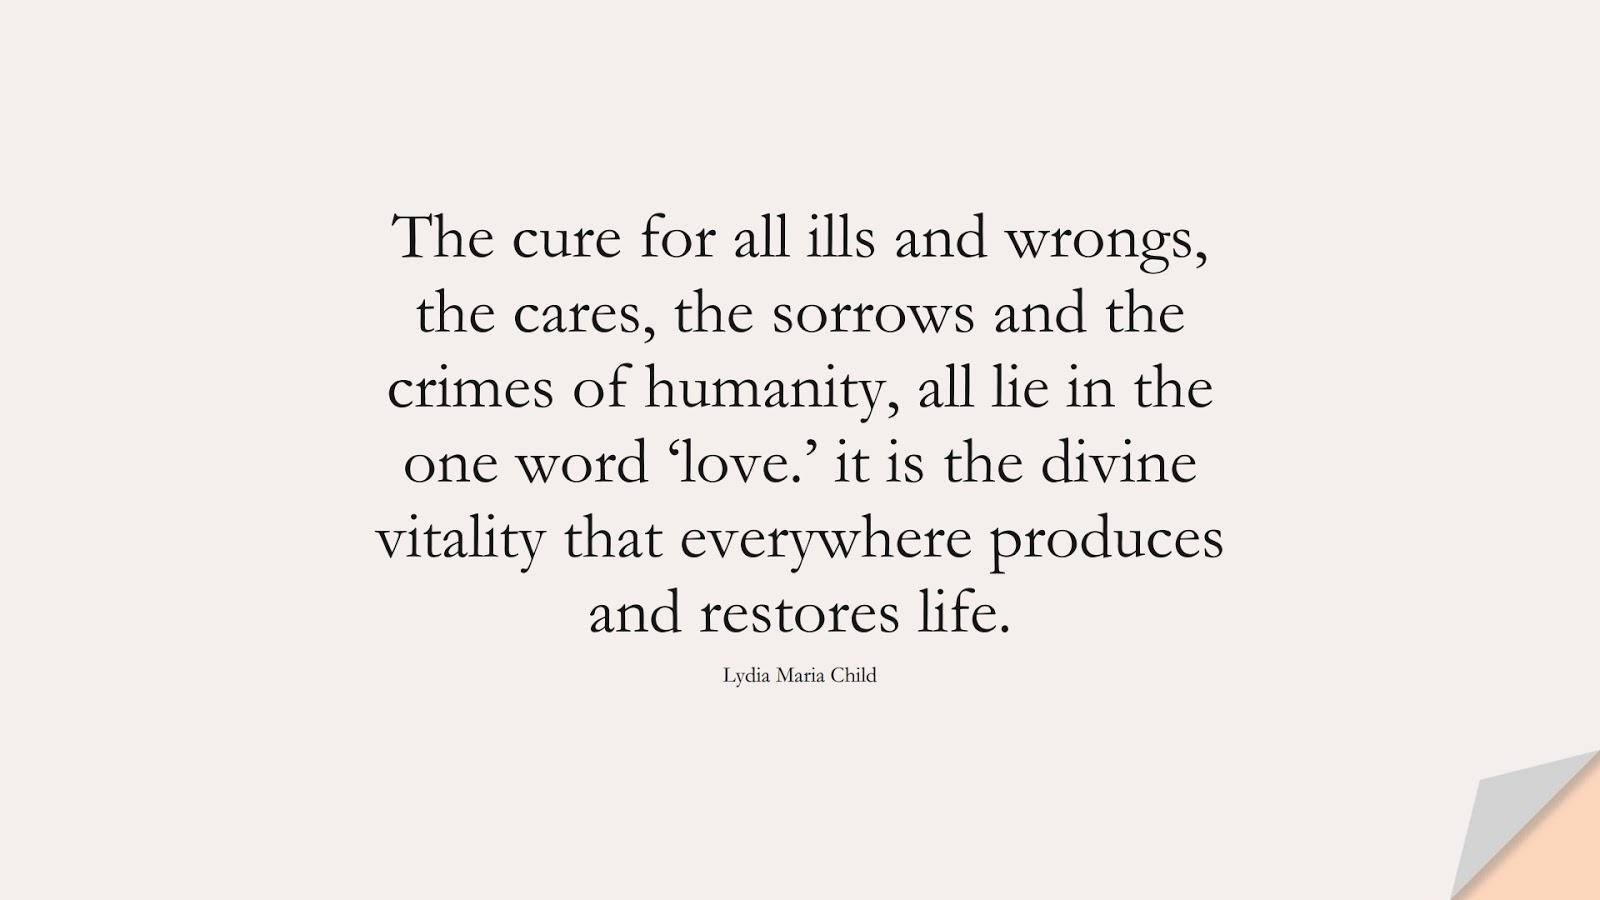 The cure for all ills and wrongs, the cares, the sorrows and the crimes of humanity, all lie in the one word 'love.' it is the divine vitality that everywhere produces and restores life. (Lydia Maria Child);  #LoveQuotes